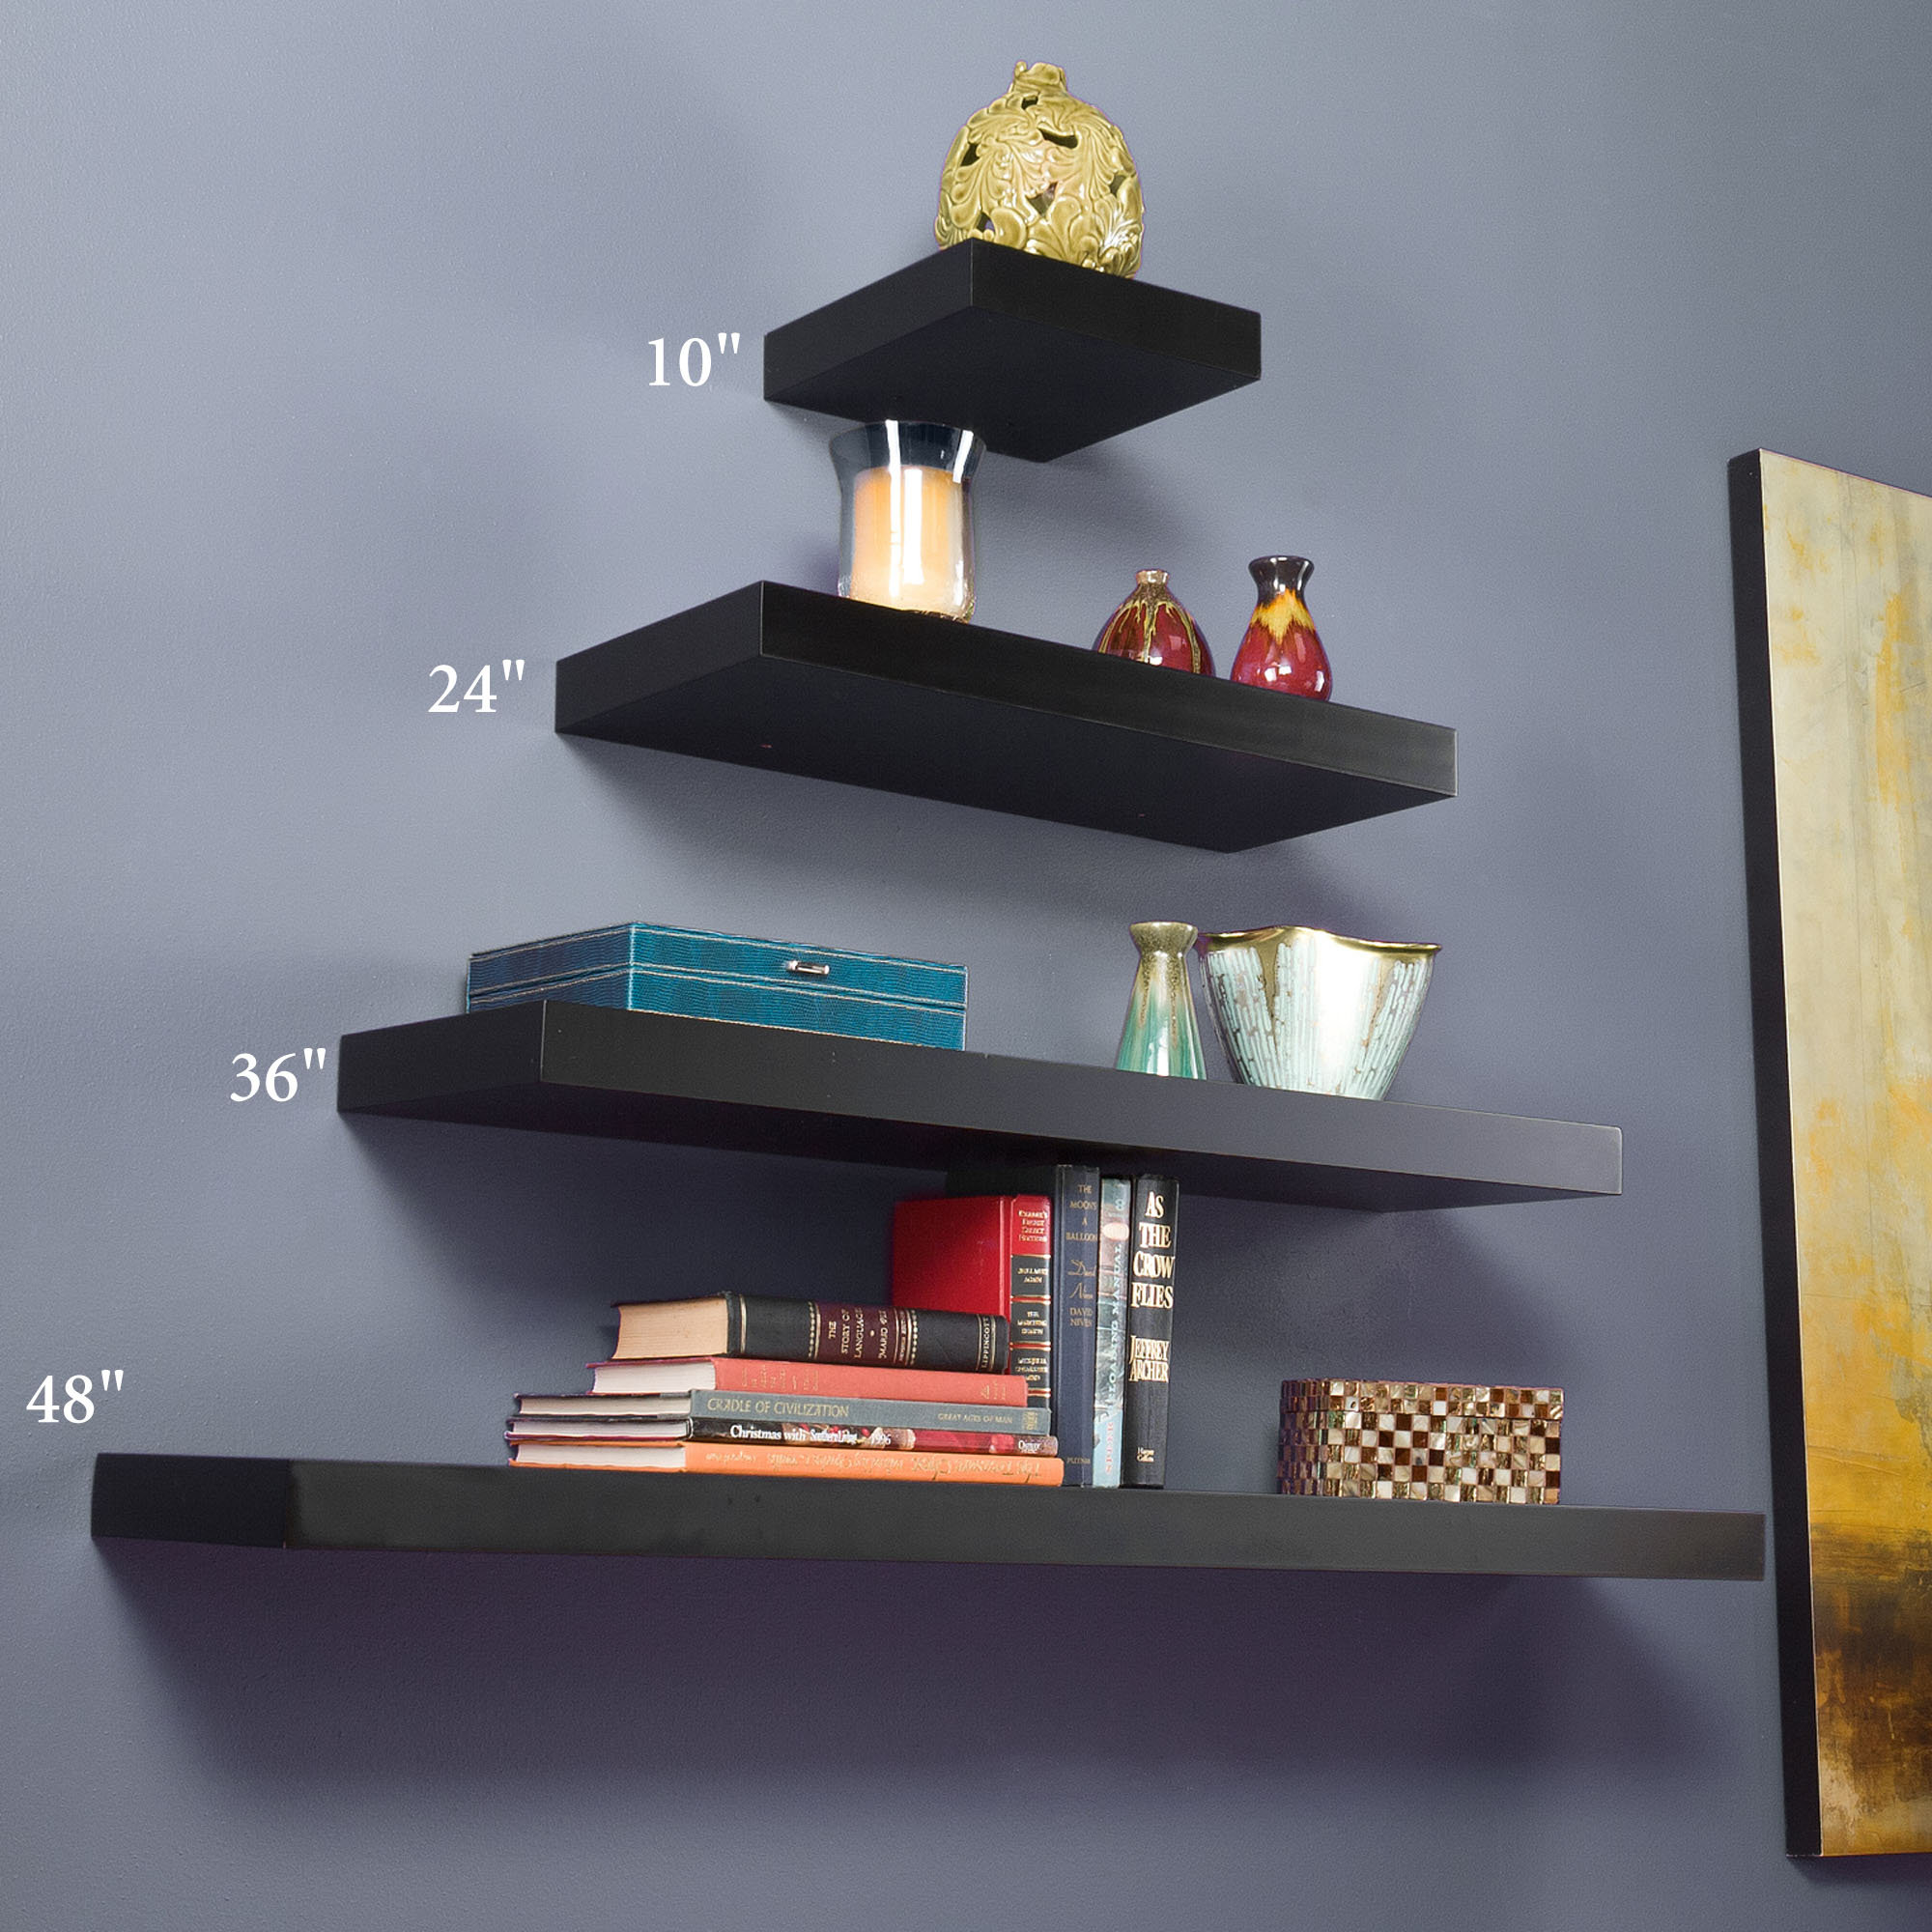 bunch benefits and versatility using the floating wall shelf appealing design blu grey with some levels black wooden wood shelves kitchen storage containers mitre ballarat white